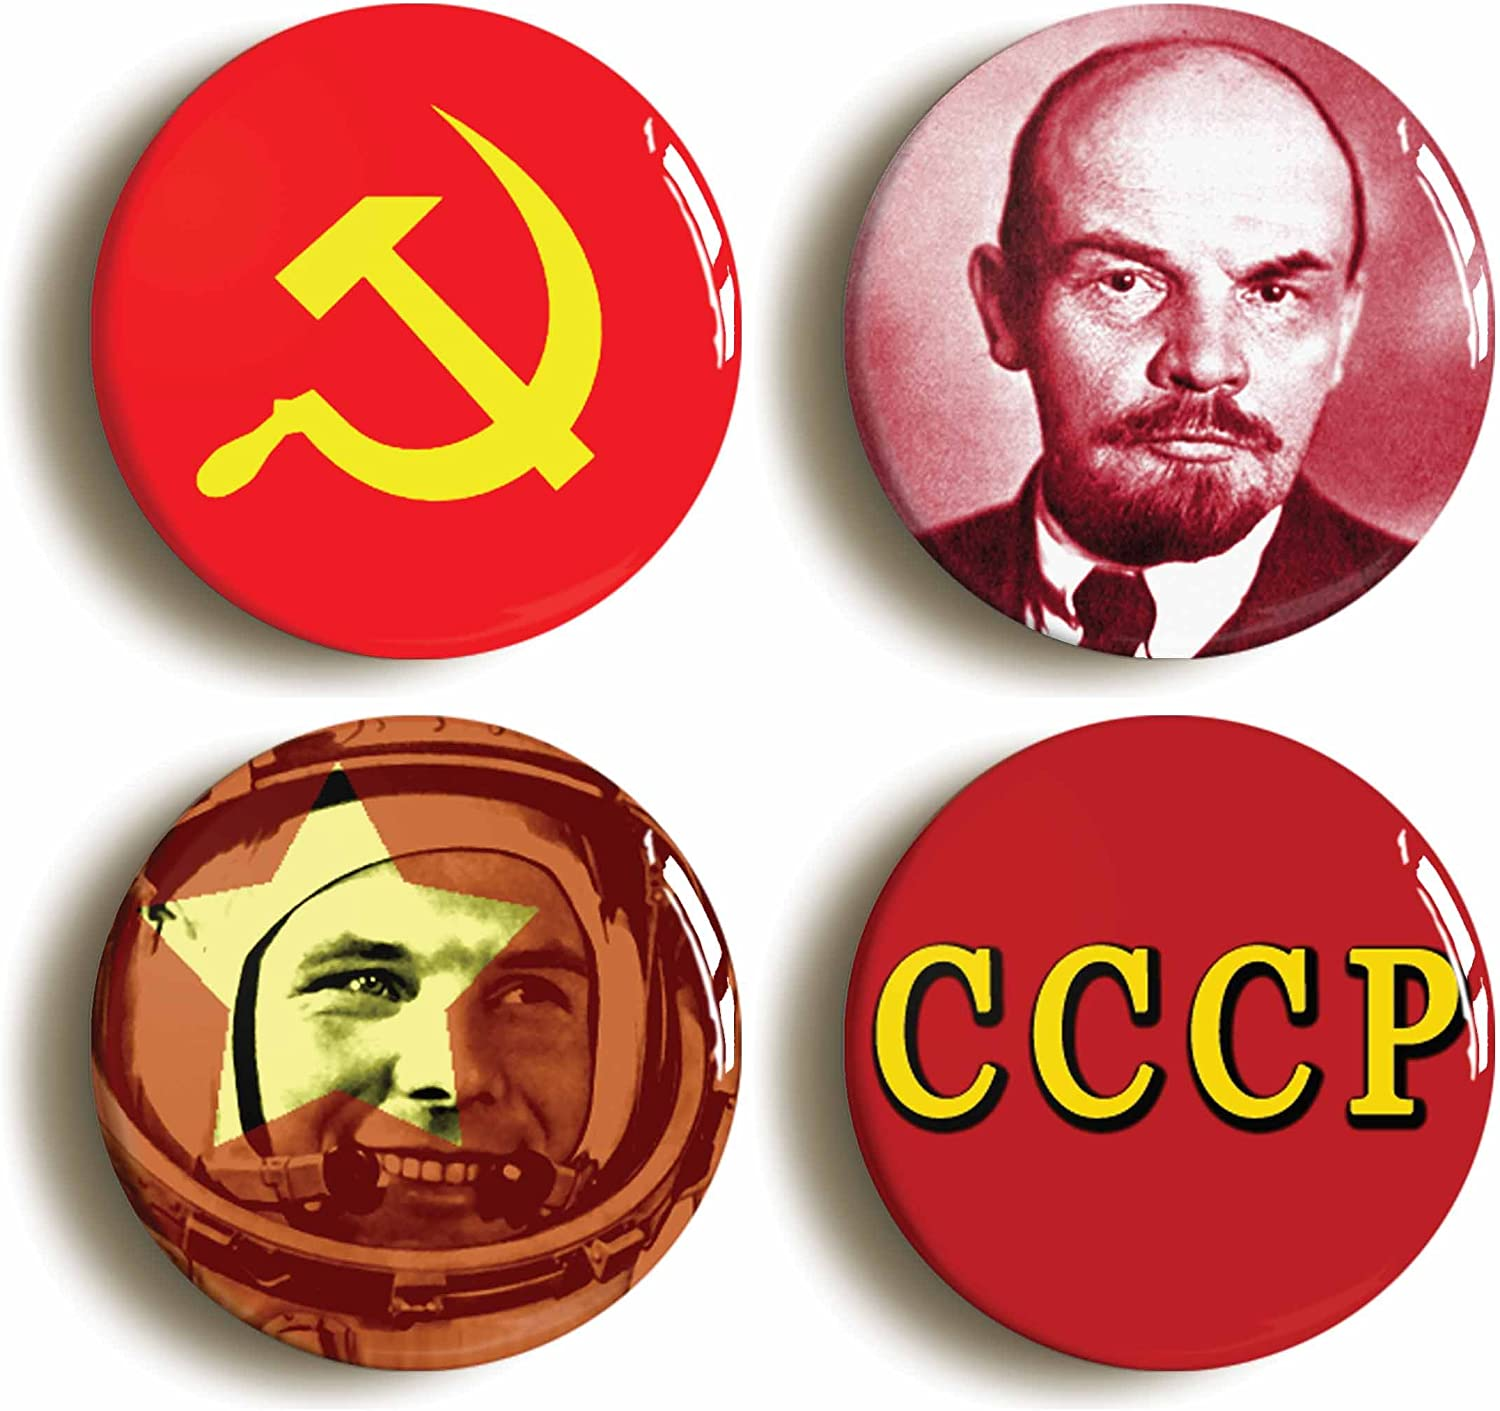 25mm Button Badge Hammer and Sickle//Communist